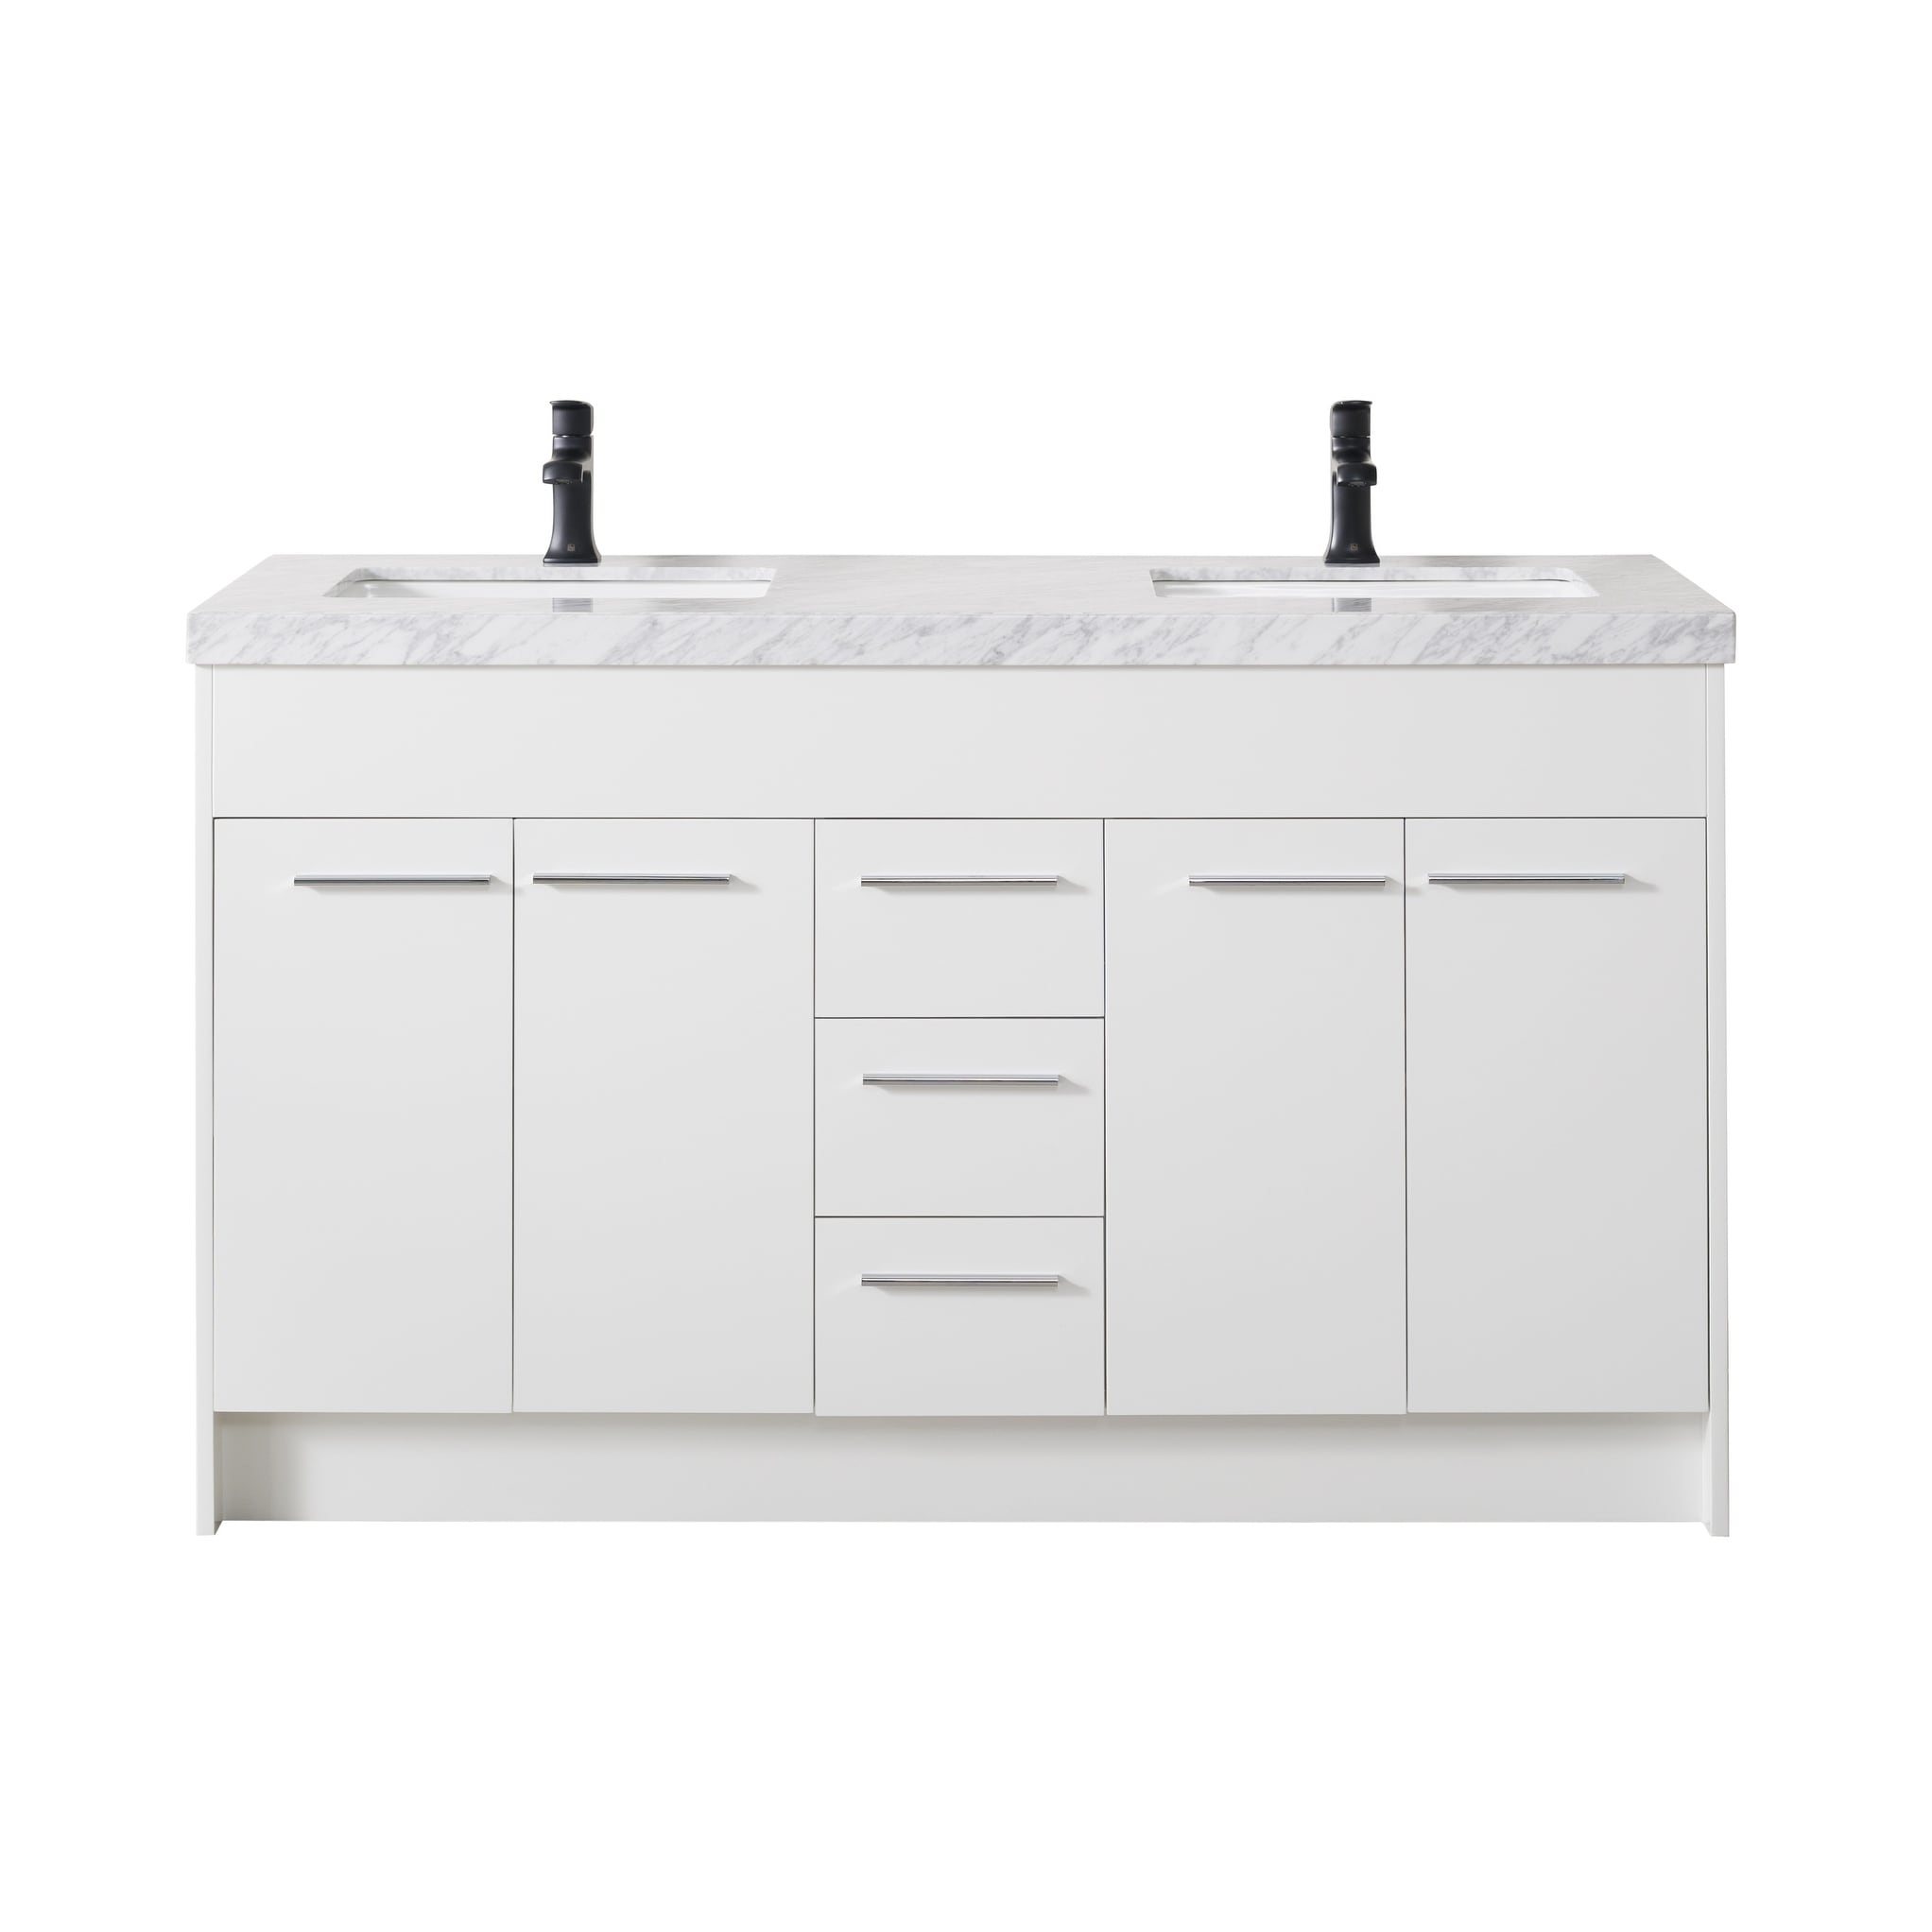 48 Inch Bath Vanity, Shop Stufurhome Lotus 60 Inch White Double Sink Bathroom Vanity With Drains And Faucets In Matte Black Overstock 22484941